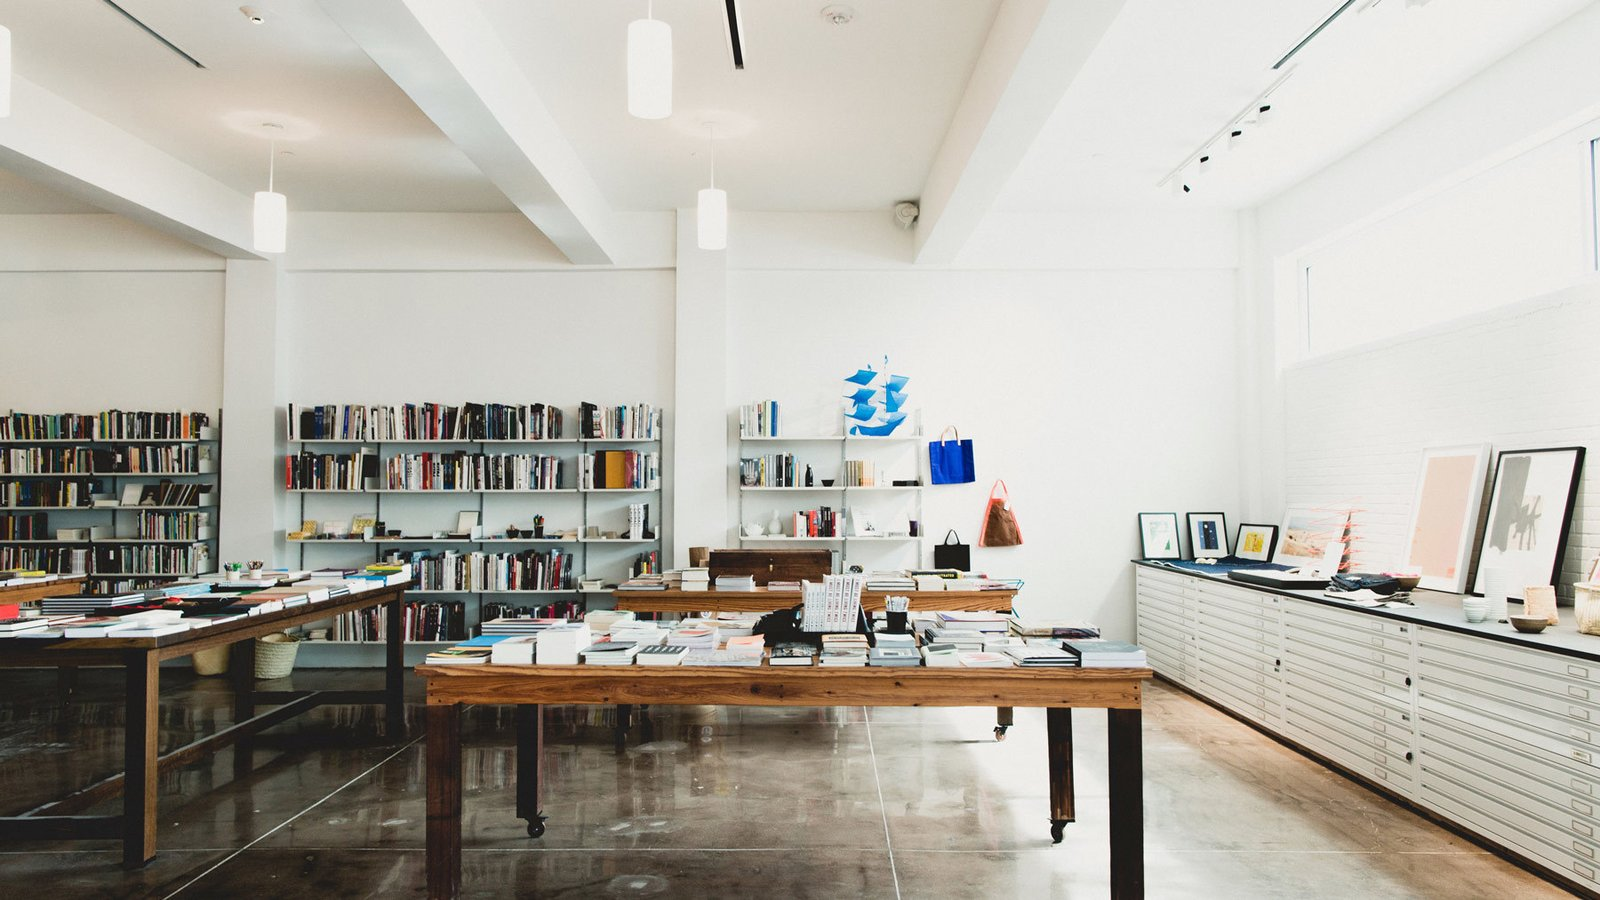 Studio and outfitted by alice cottrell and its interiors lie somewhere in between high end luxury and industrial chic with polished concrete floors